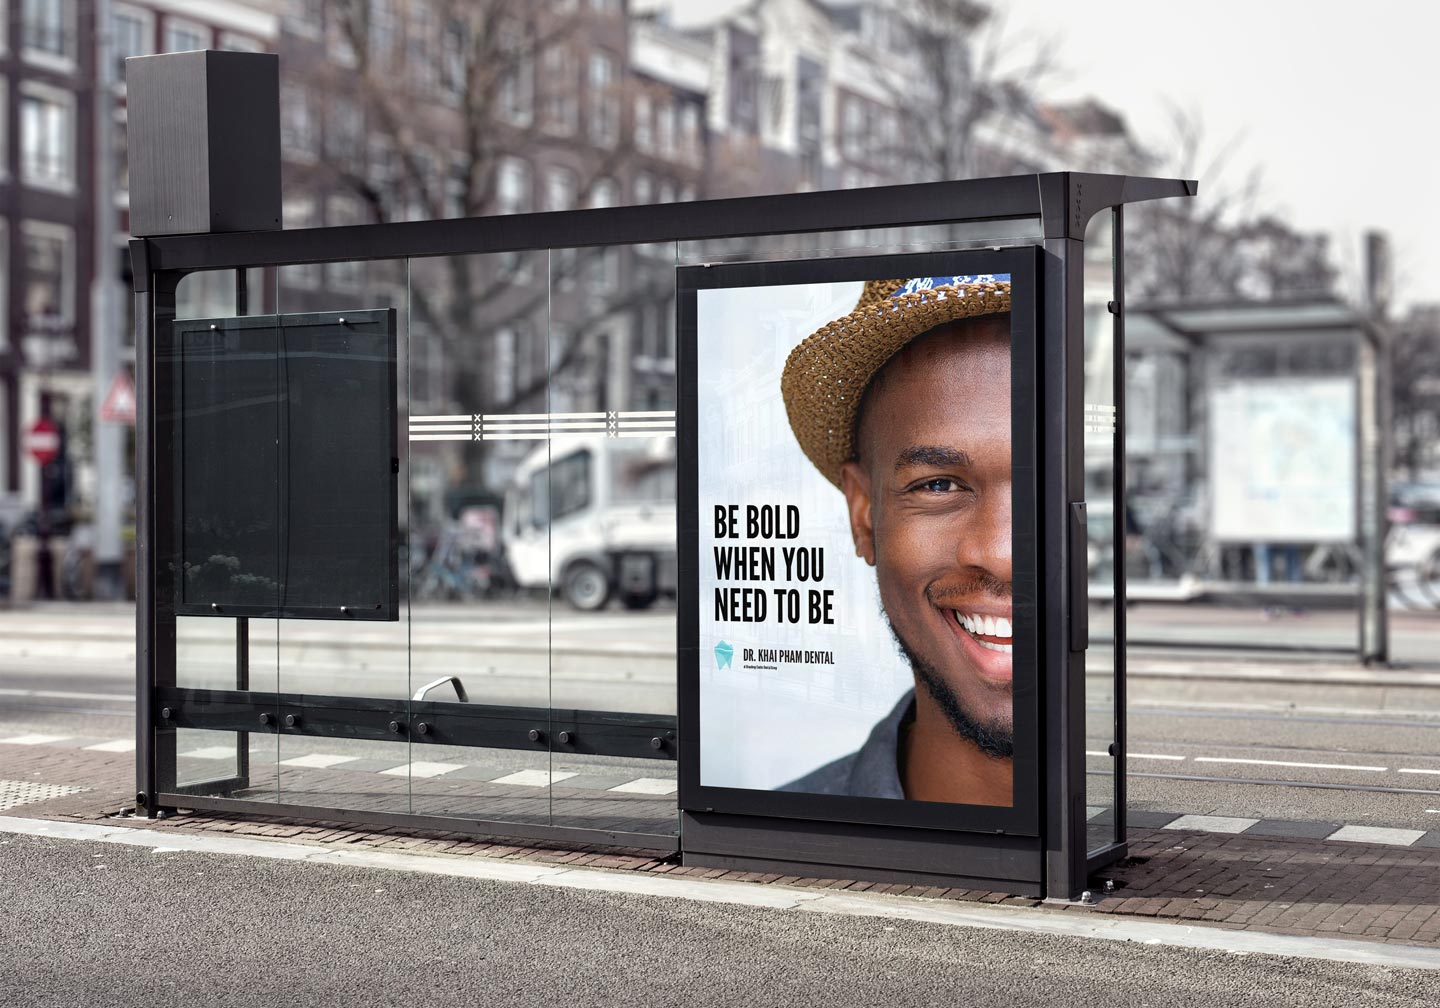 Bus stop advertising for business brand design